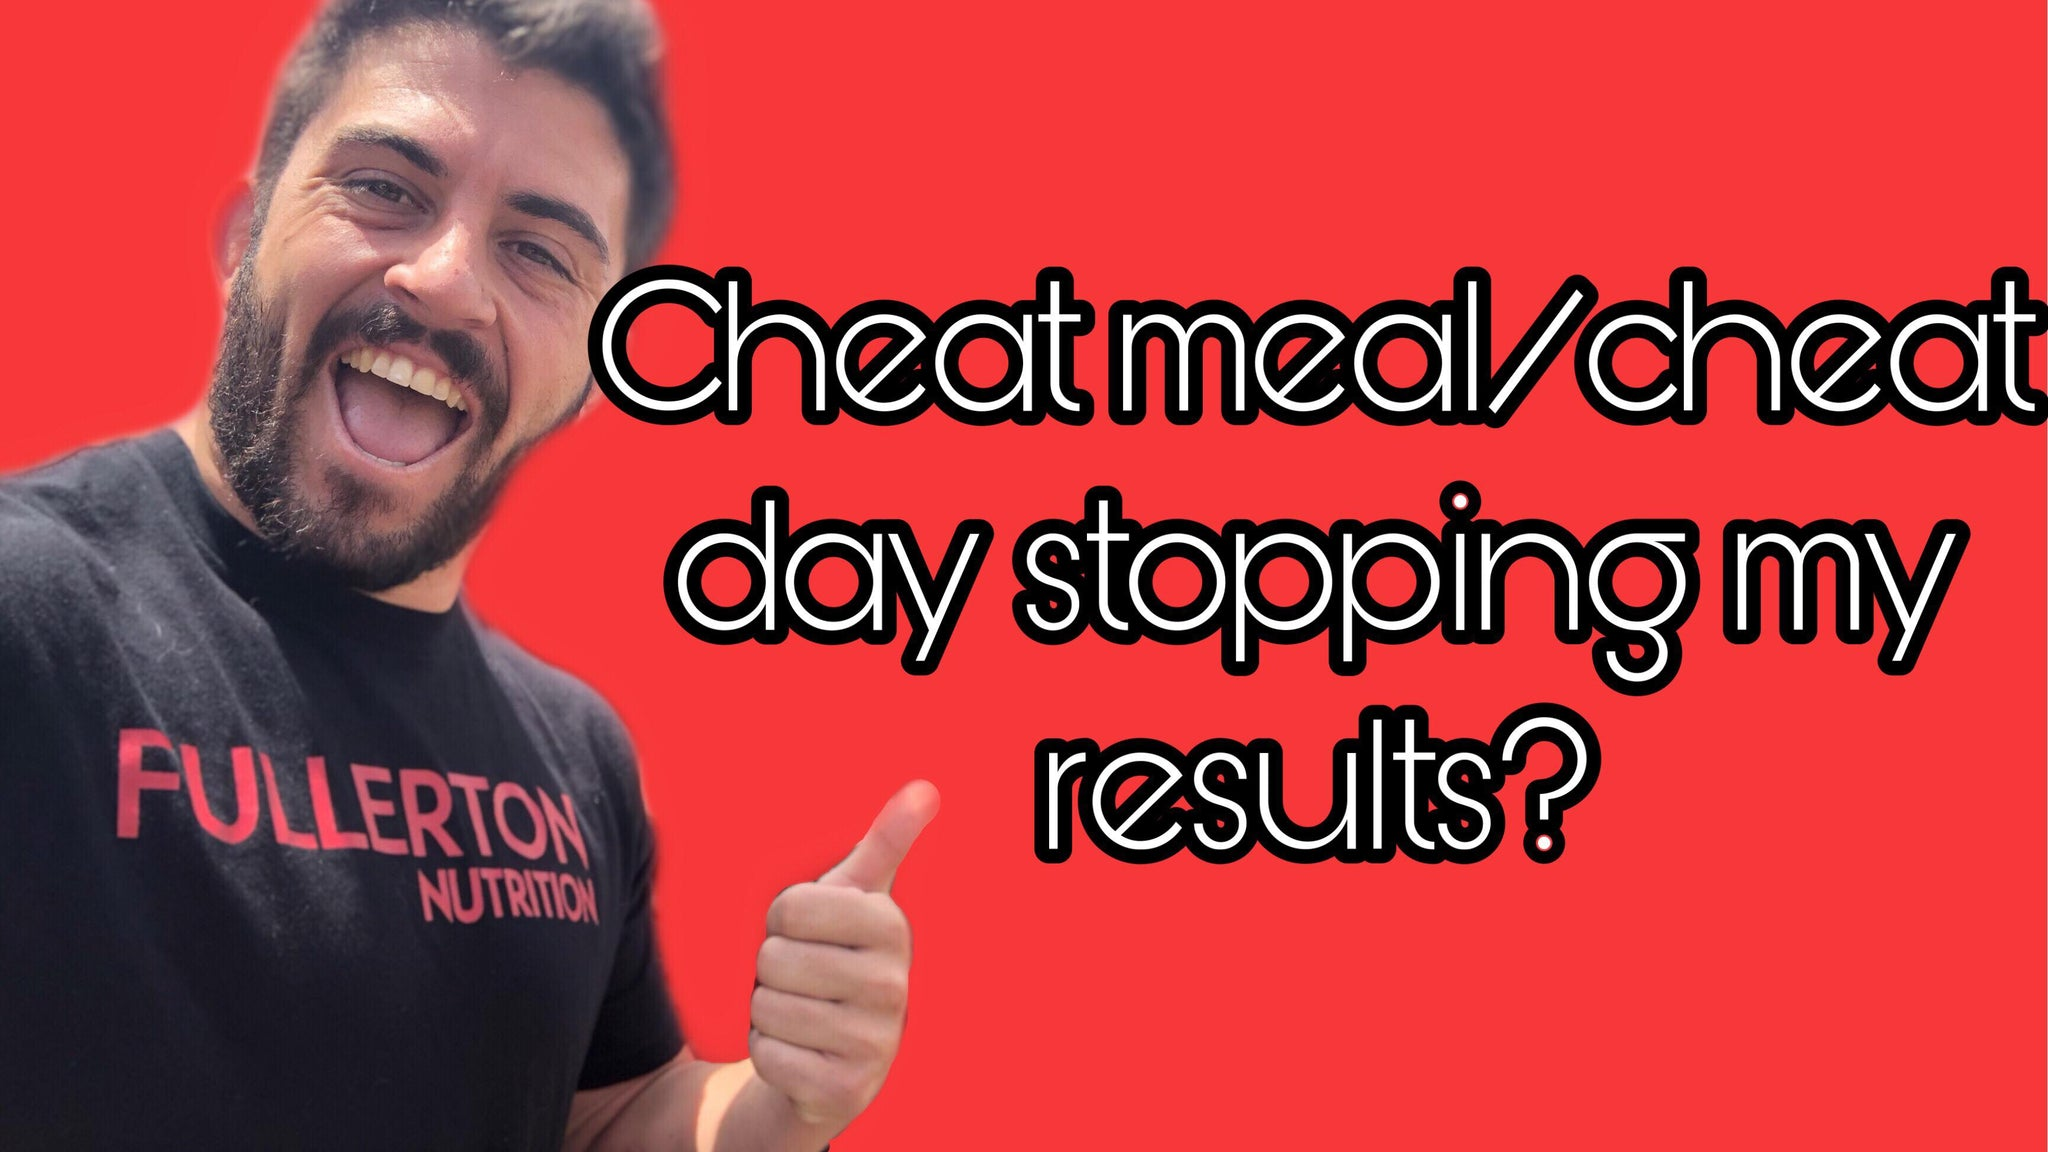 Is a cheat meal/day stopping my results